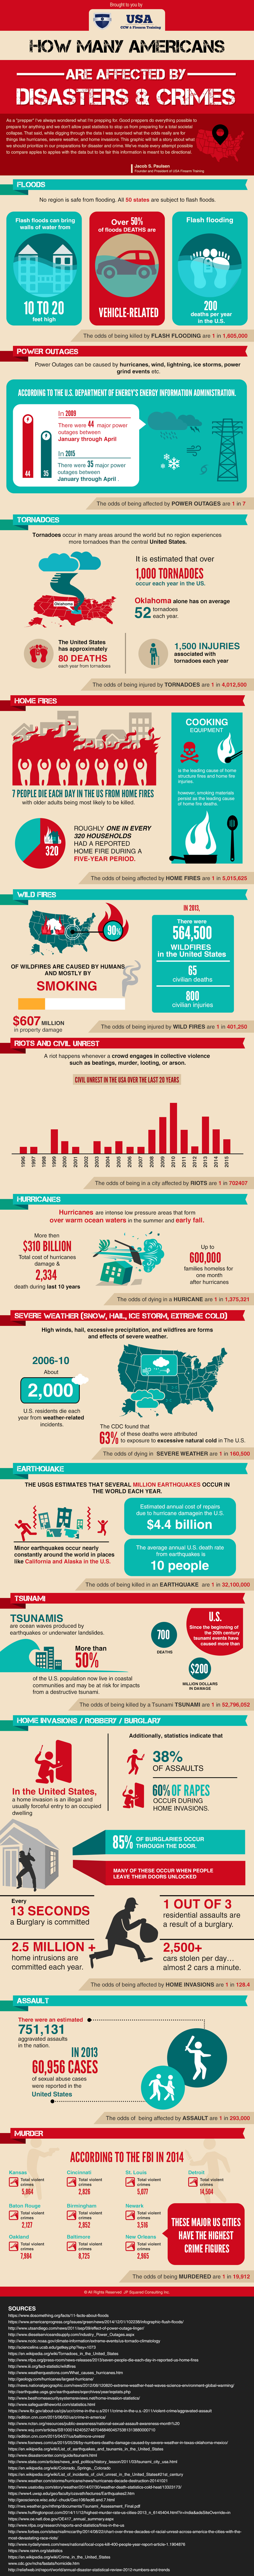 infographic about the likelihood of different disasters and crimes in america